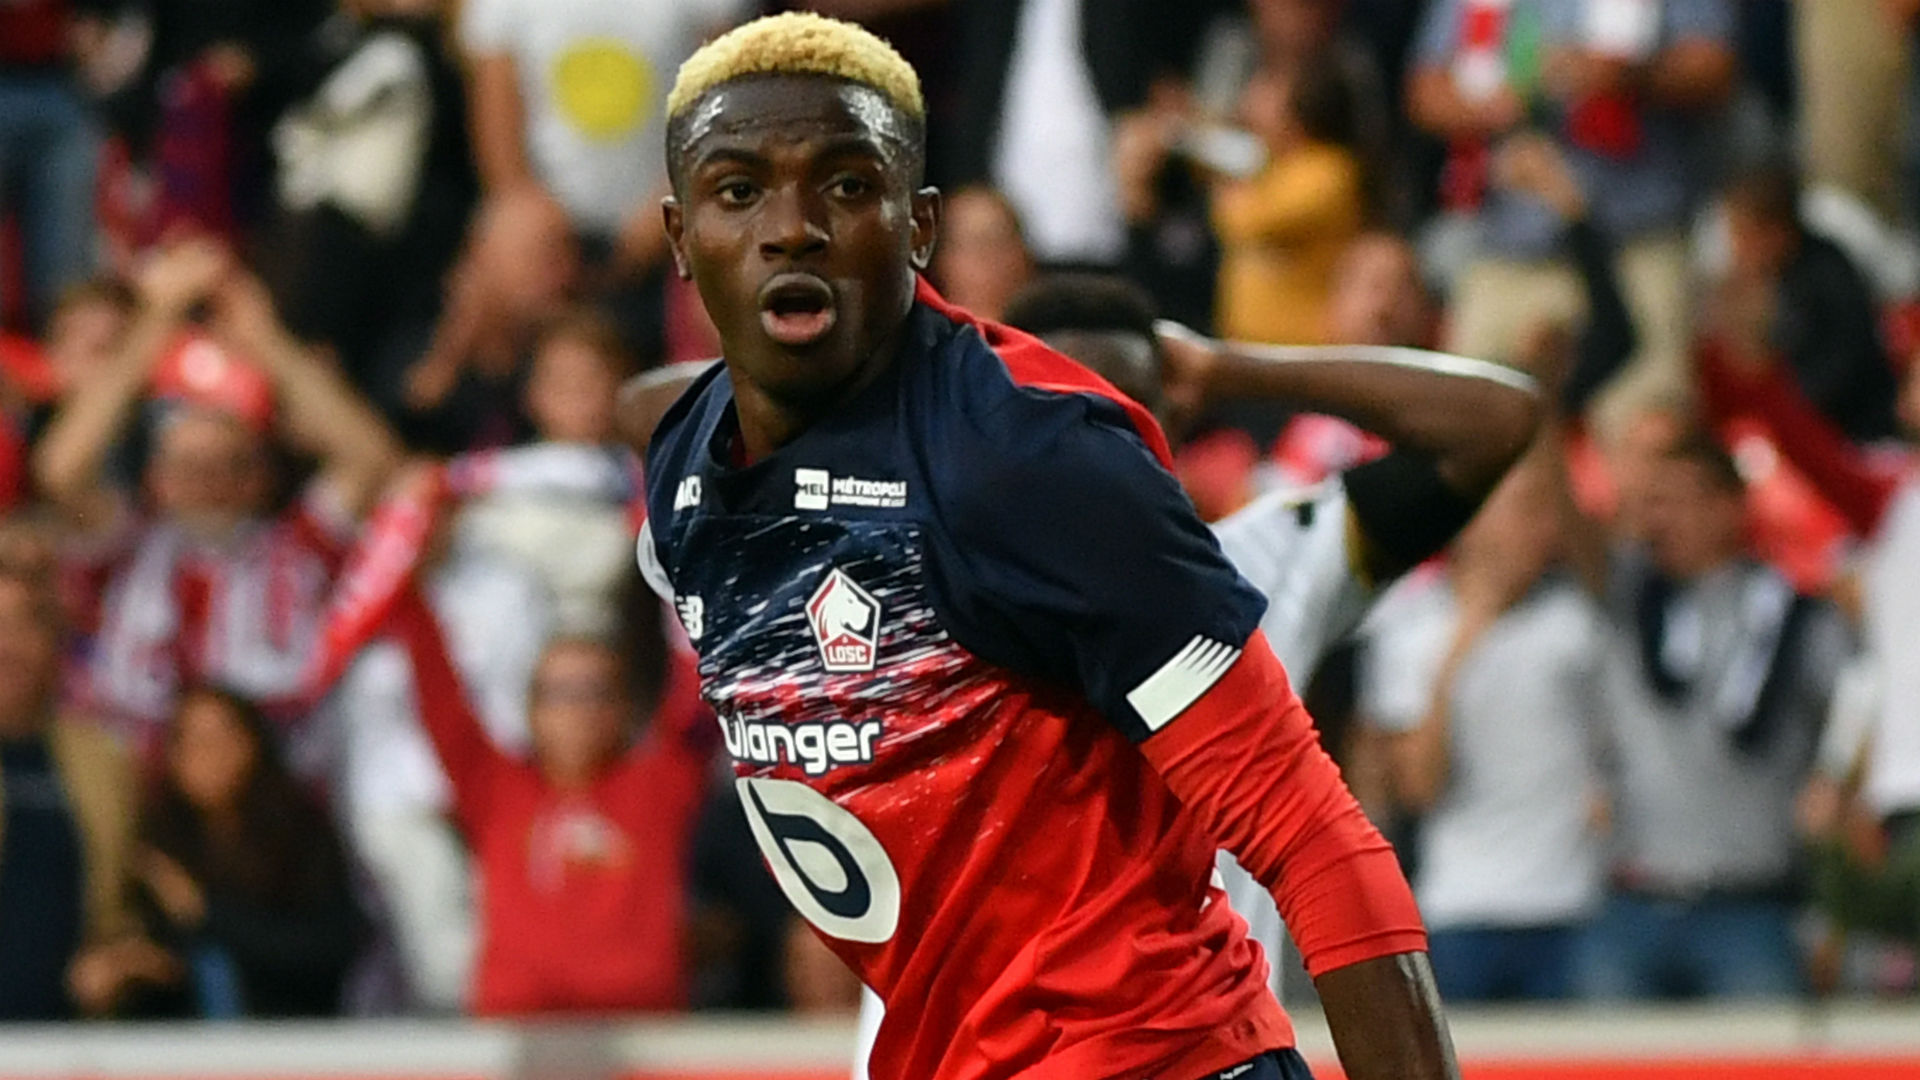 Osimhen Barcelona And Real Madrid Target Could Leave Lille Next Year Sporting News Canada